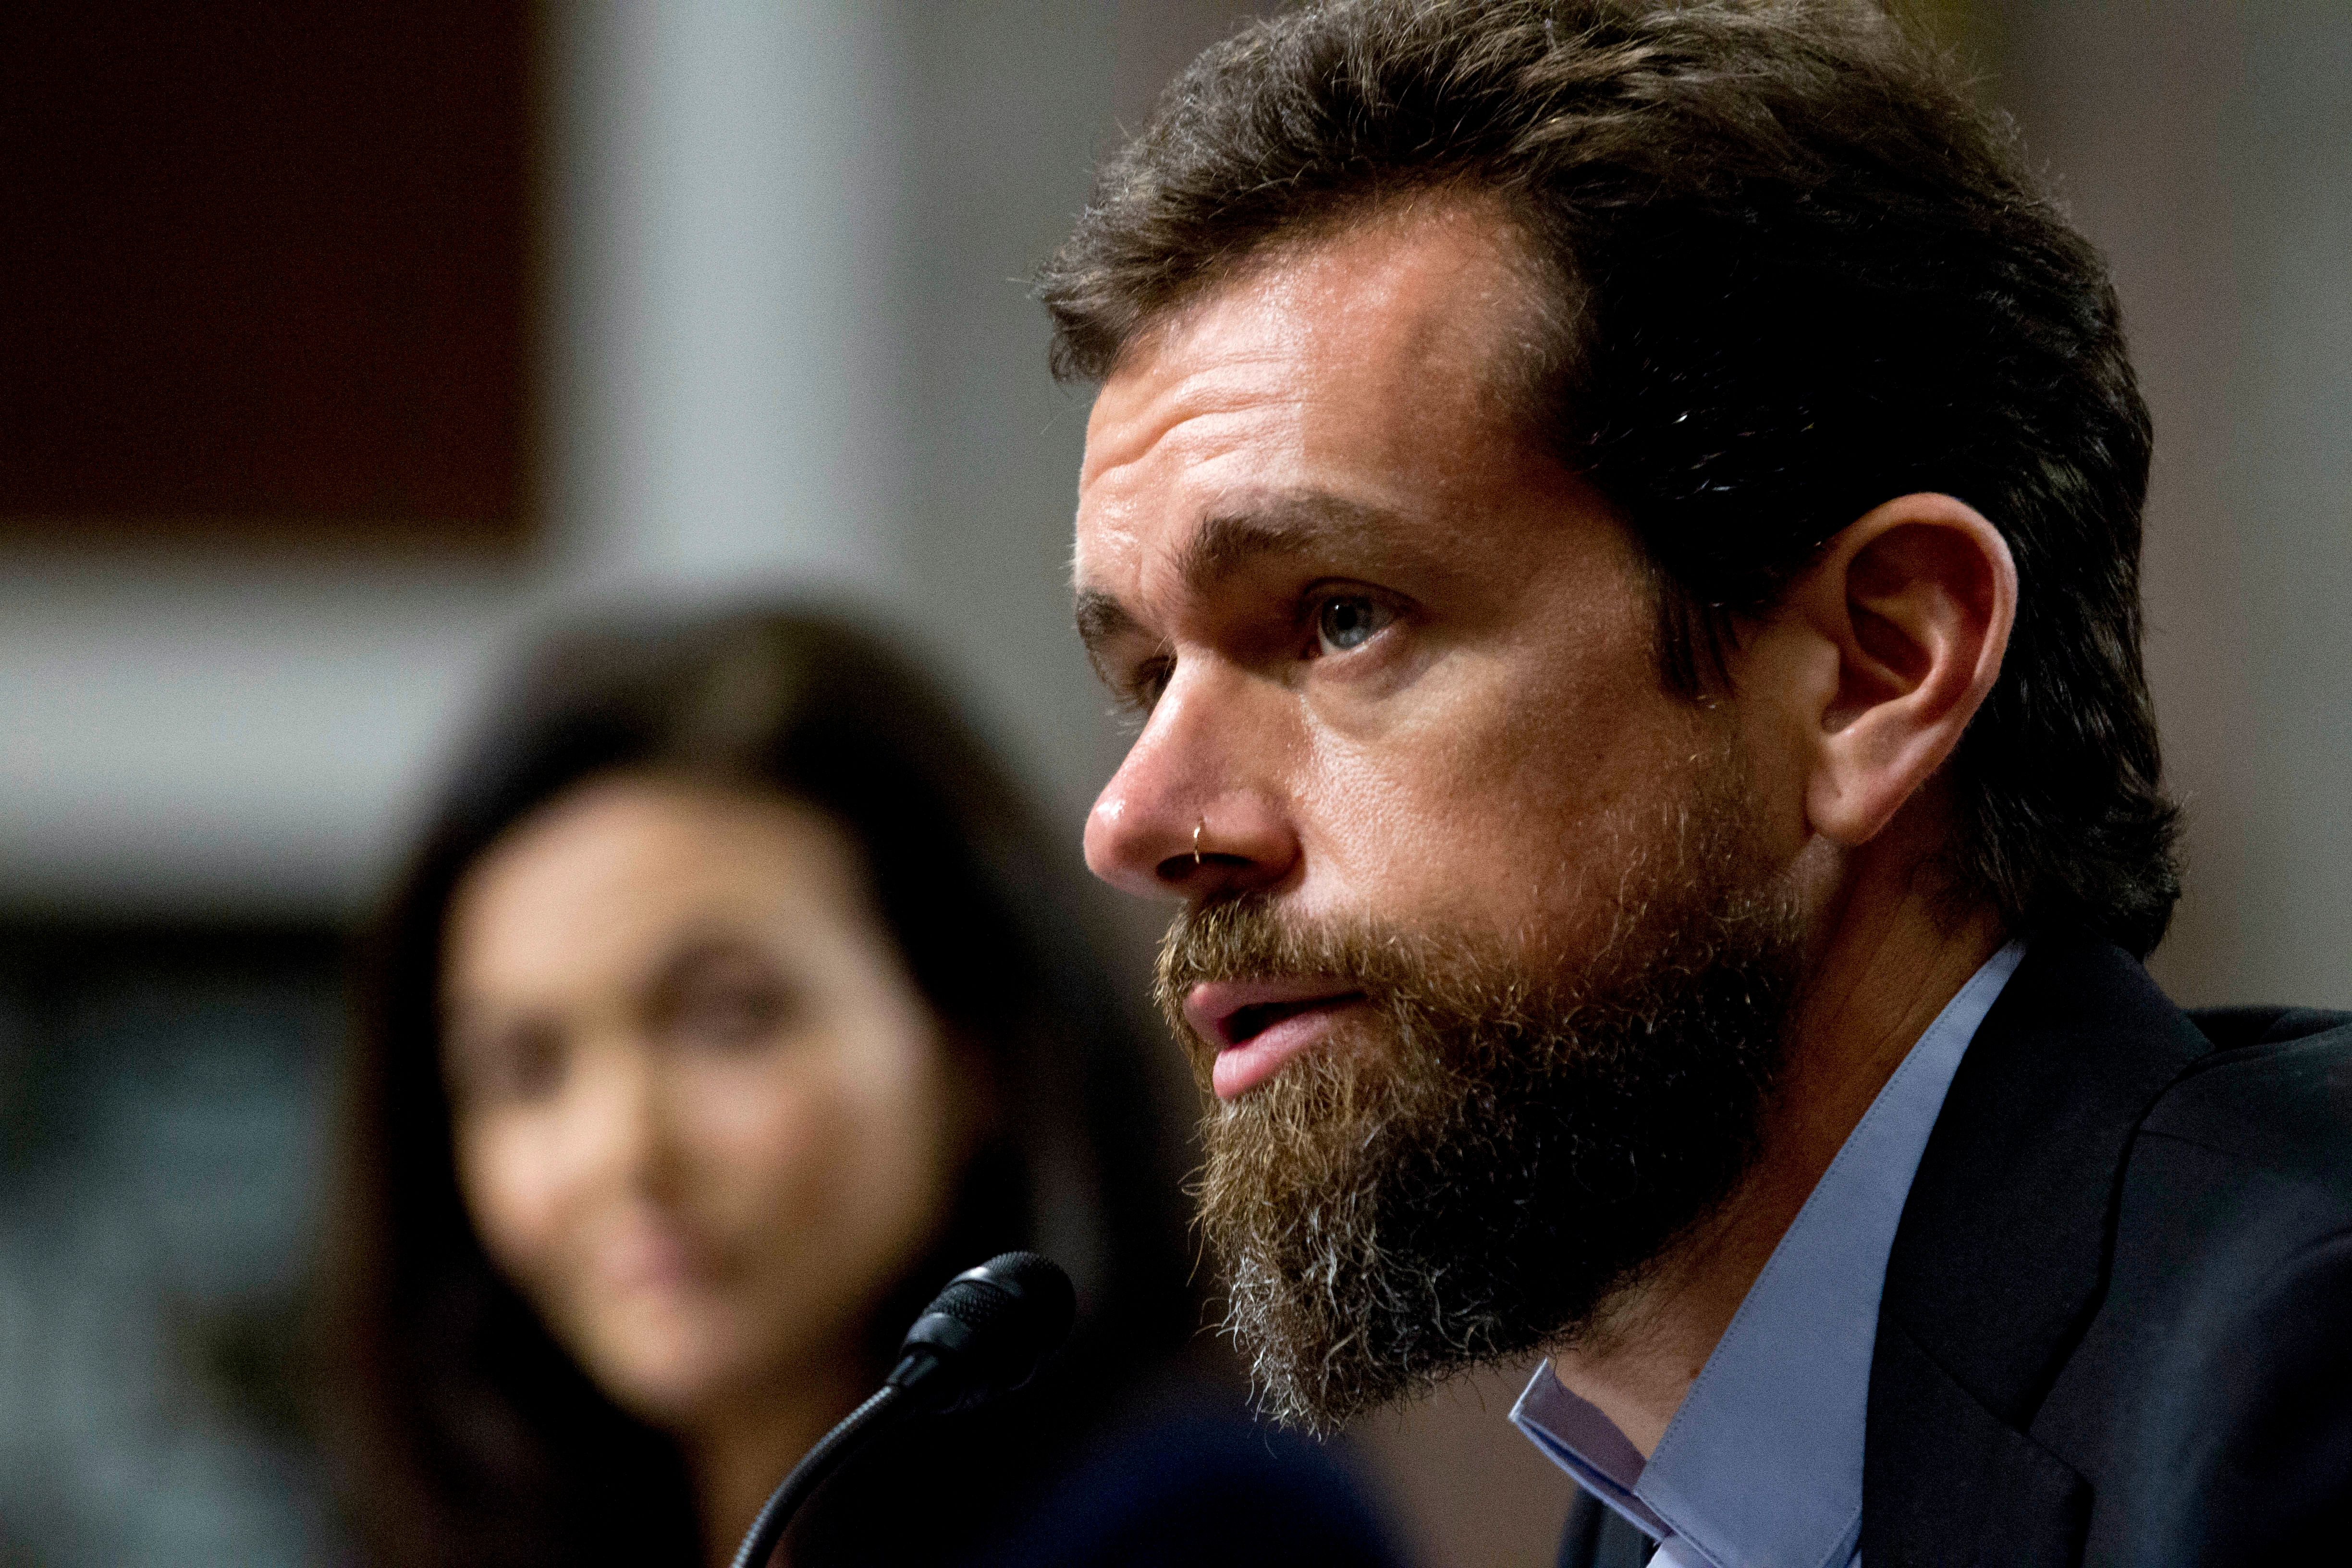 Twitter CEO Jack Dorsey testifies before the Senate Intelligence Committee hearing on Capitol Hill, Wednesday, Sept. 5, 2018, in Washington. (AP Photo/Jose Luis Magana)